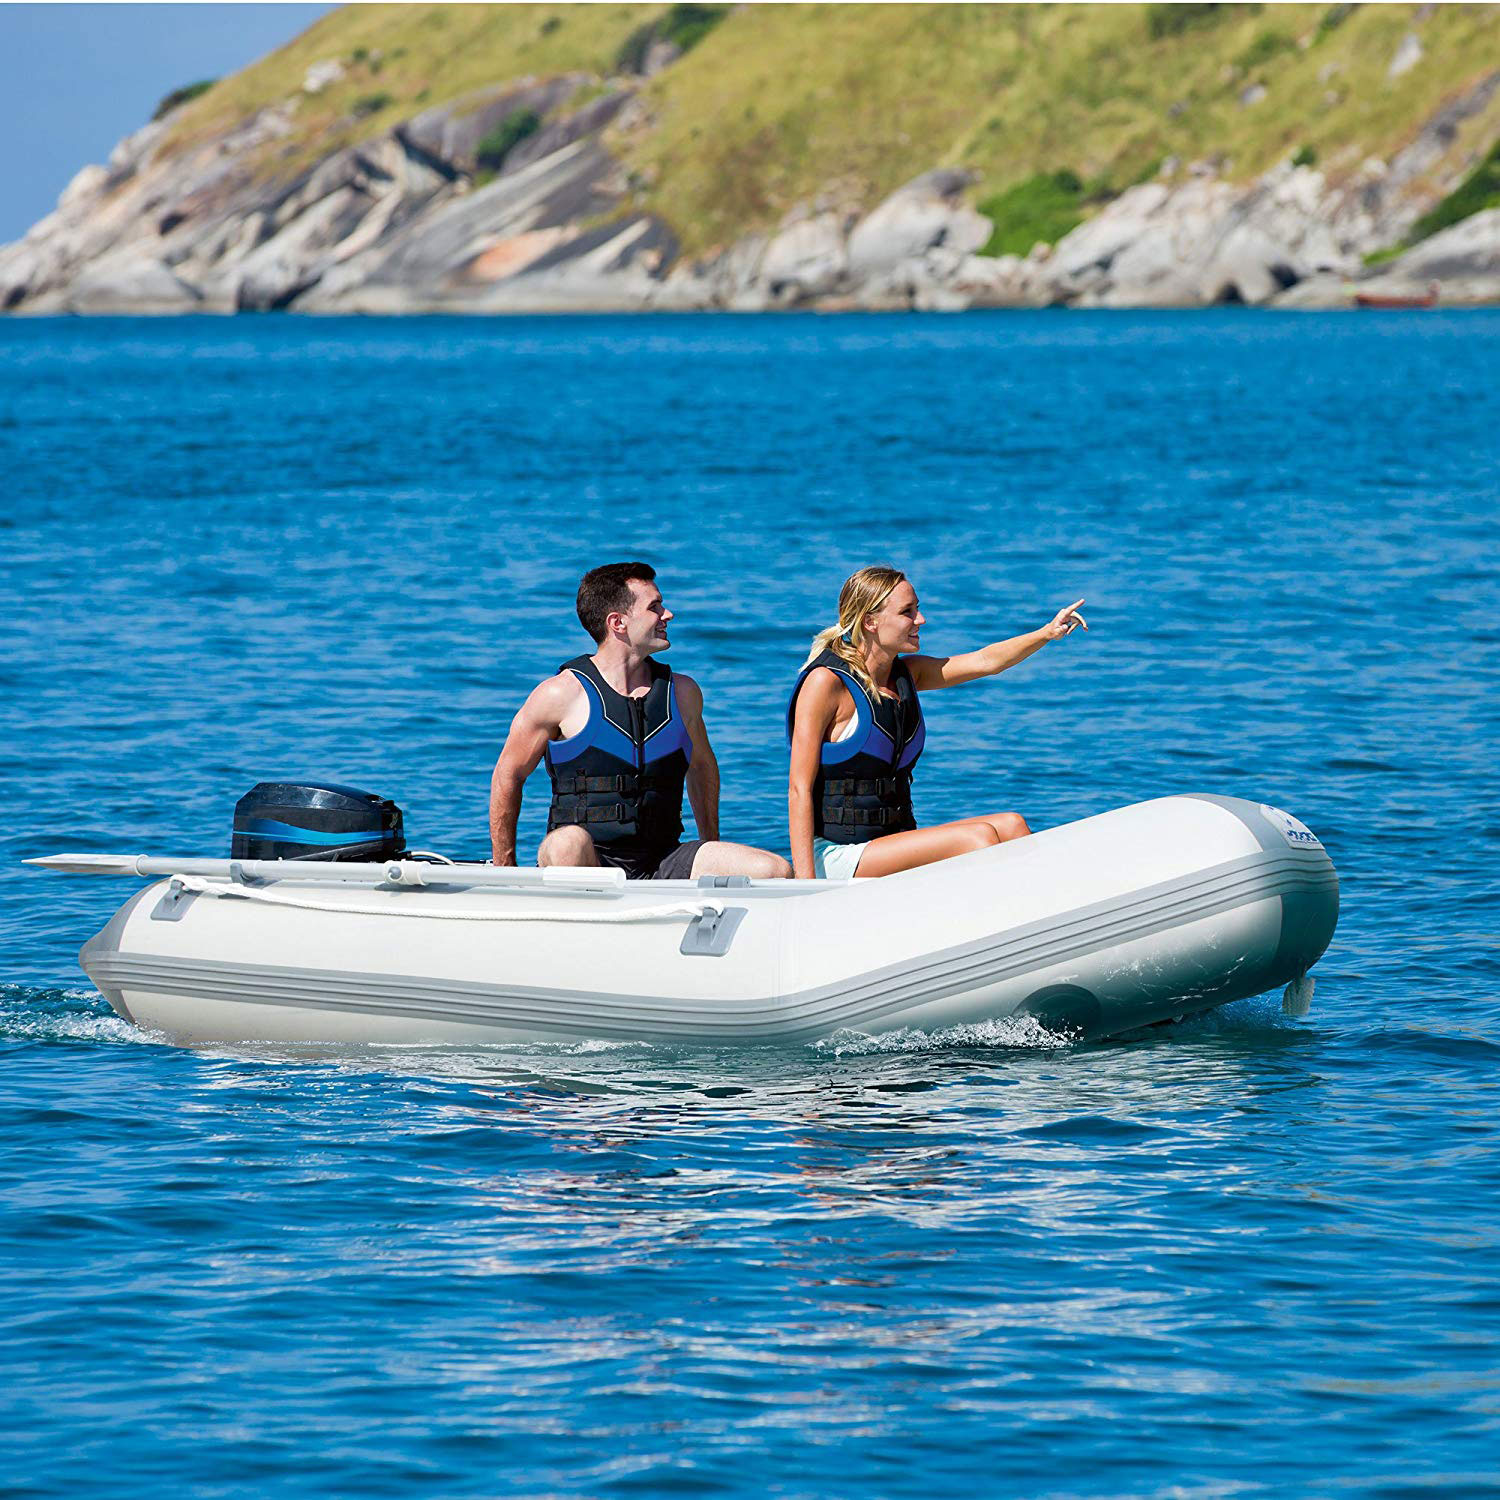 Bestway hydro force Caspian pro inflatable boat review